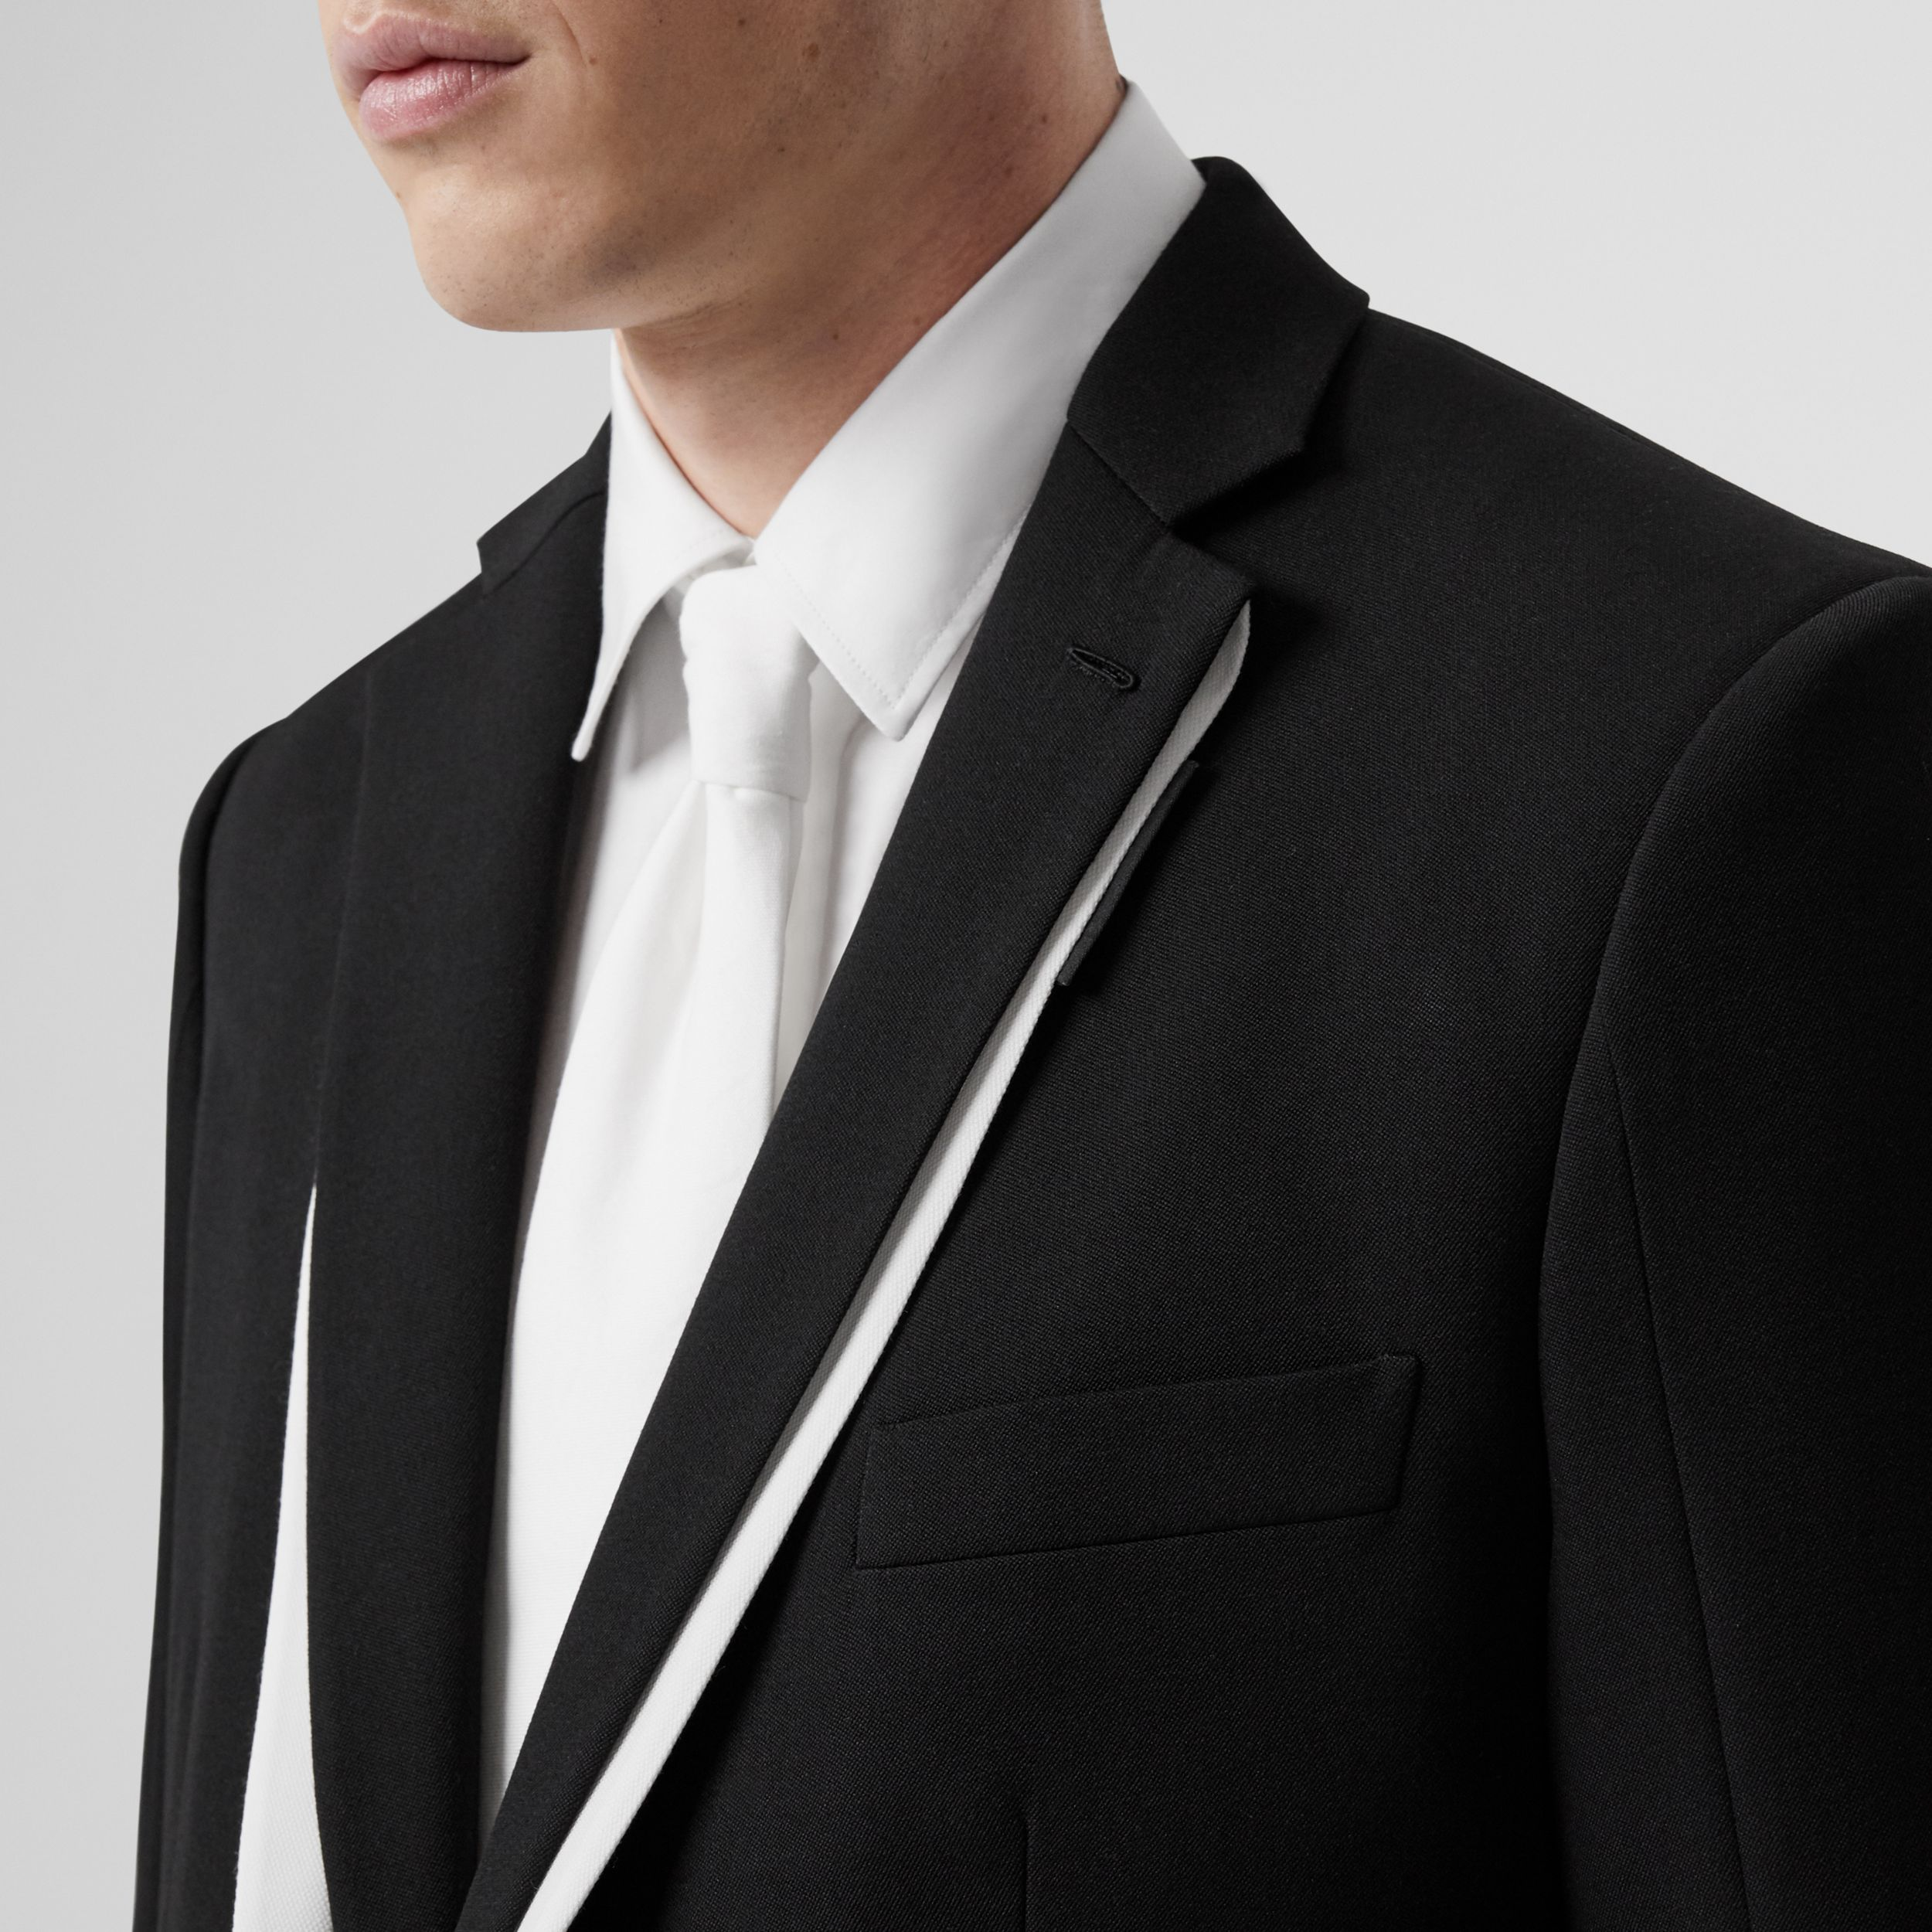 English Fit Double-front Detail Wool Tailored Jacket in Black - Men | Burberry - 2